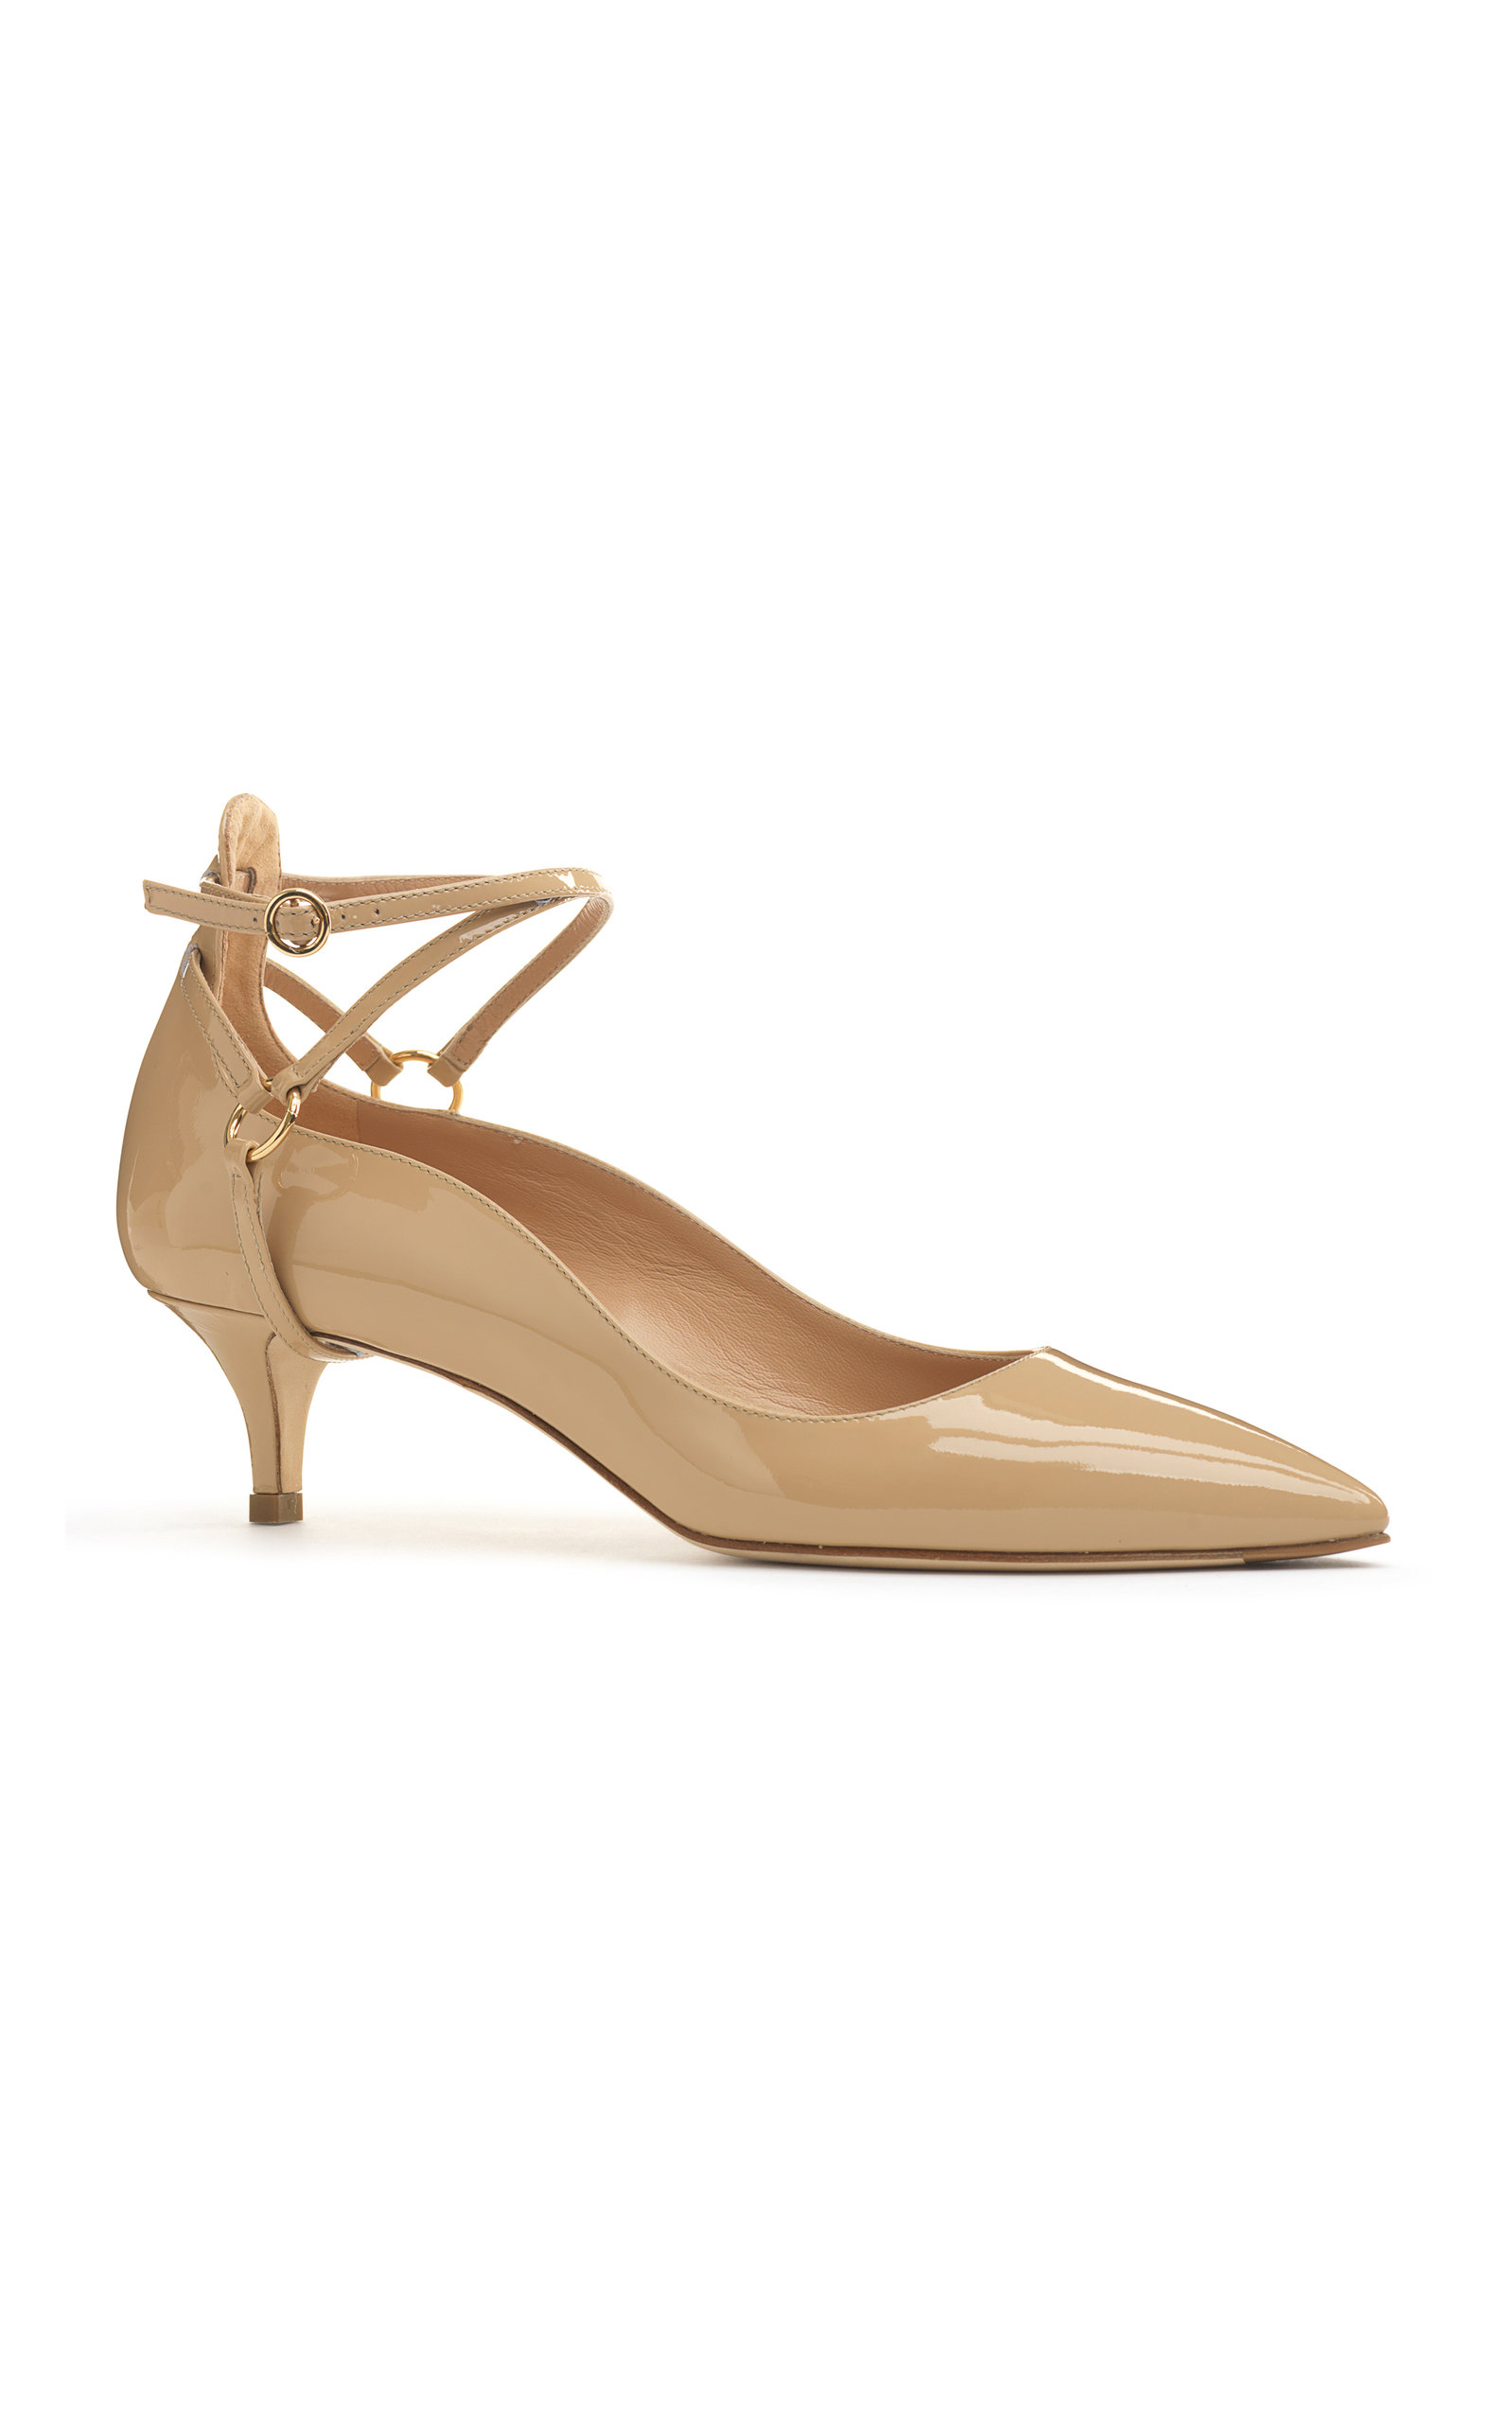 ALEXANDER WHITE Noemi Kitten Heel in Neutral